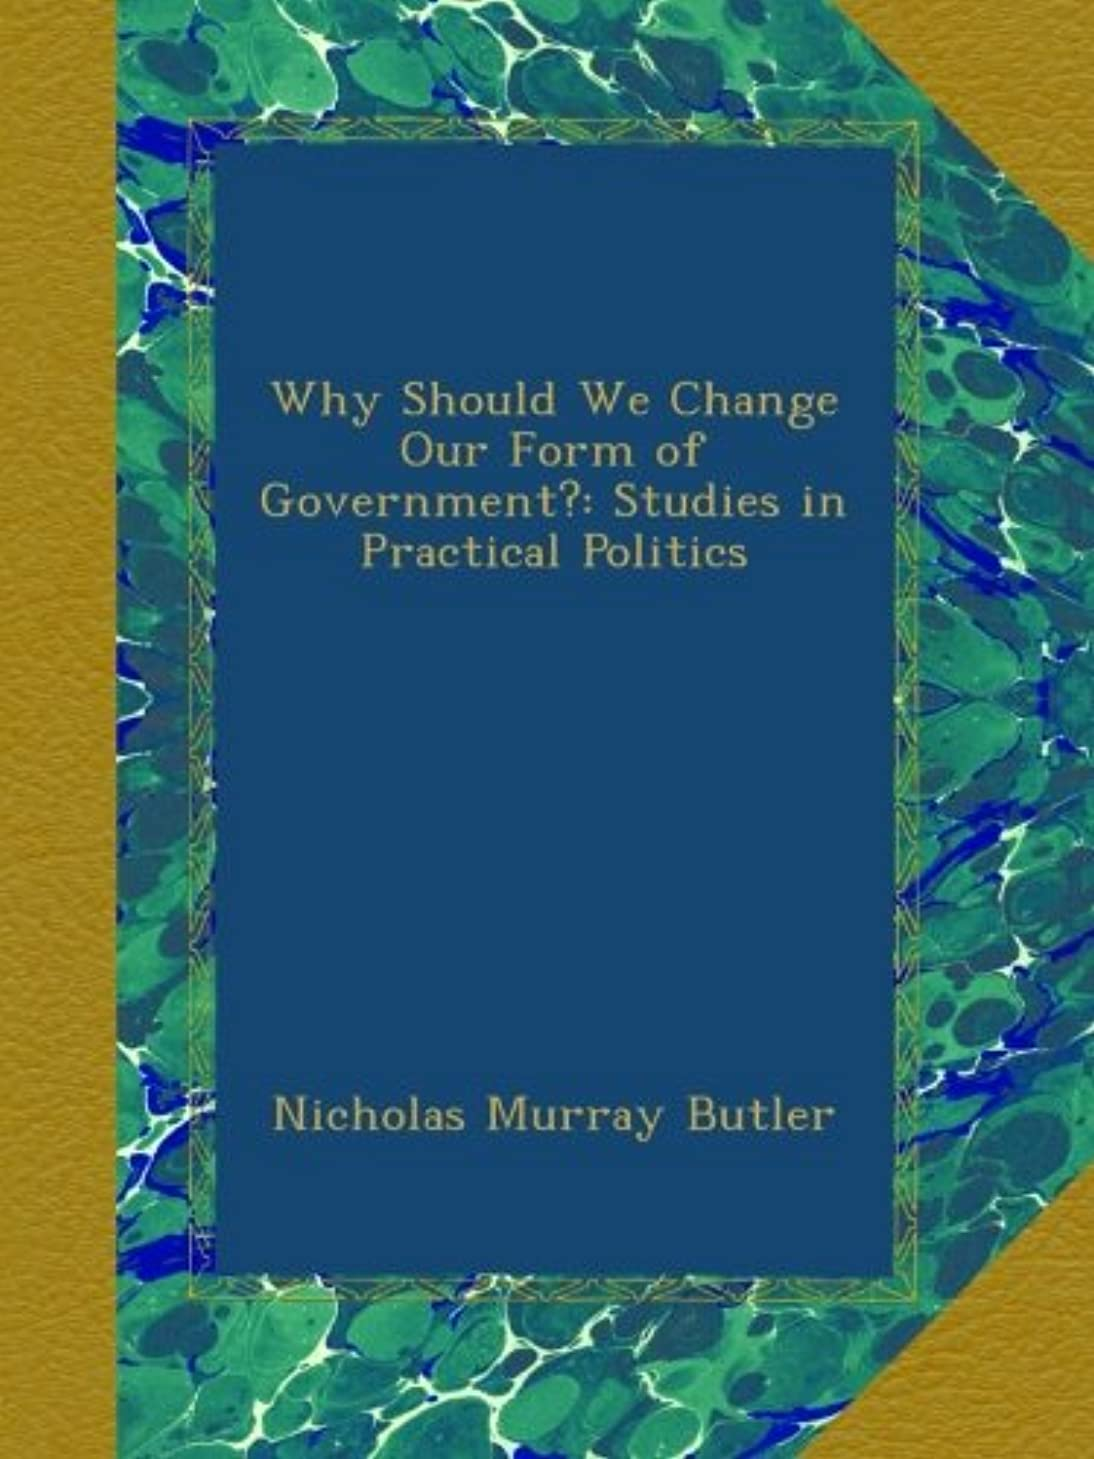 訴えるメドレーチョップWhy Should We Change Our Form of Government?: Studies in Practical Politics